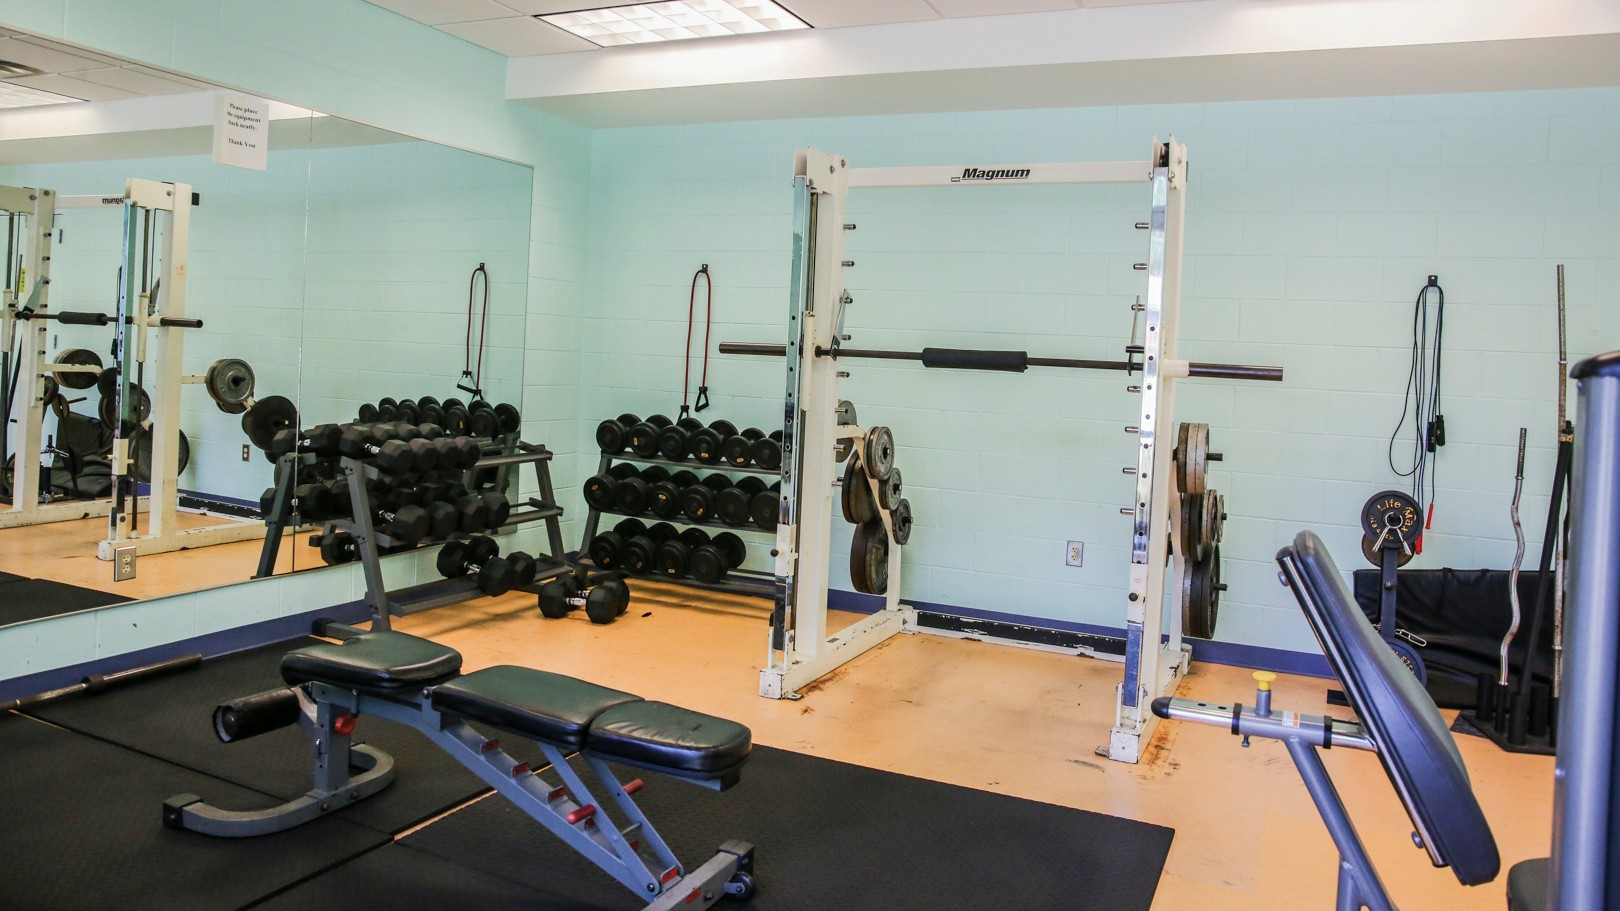 A weight room with free weights and workout equipment